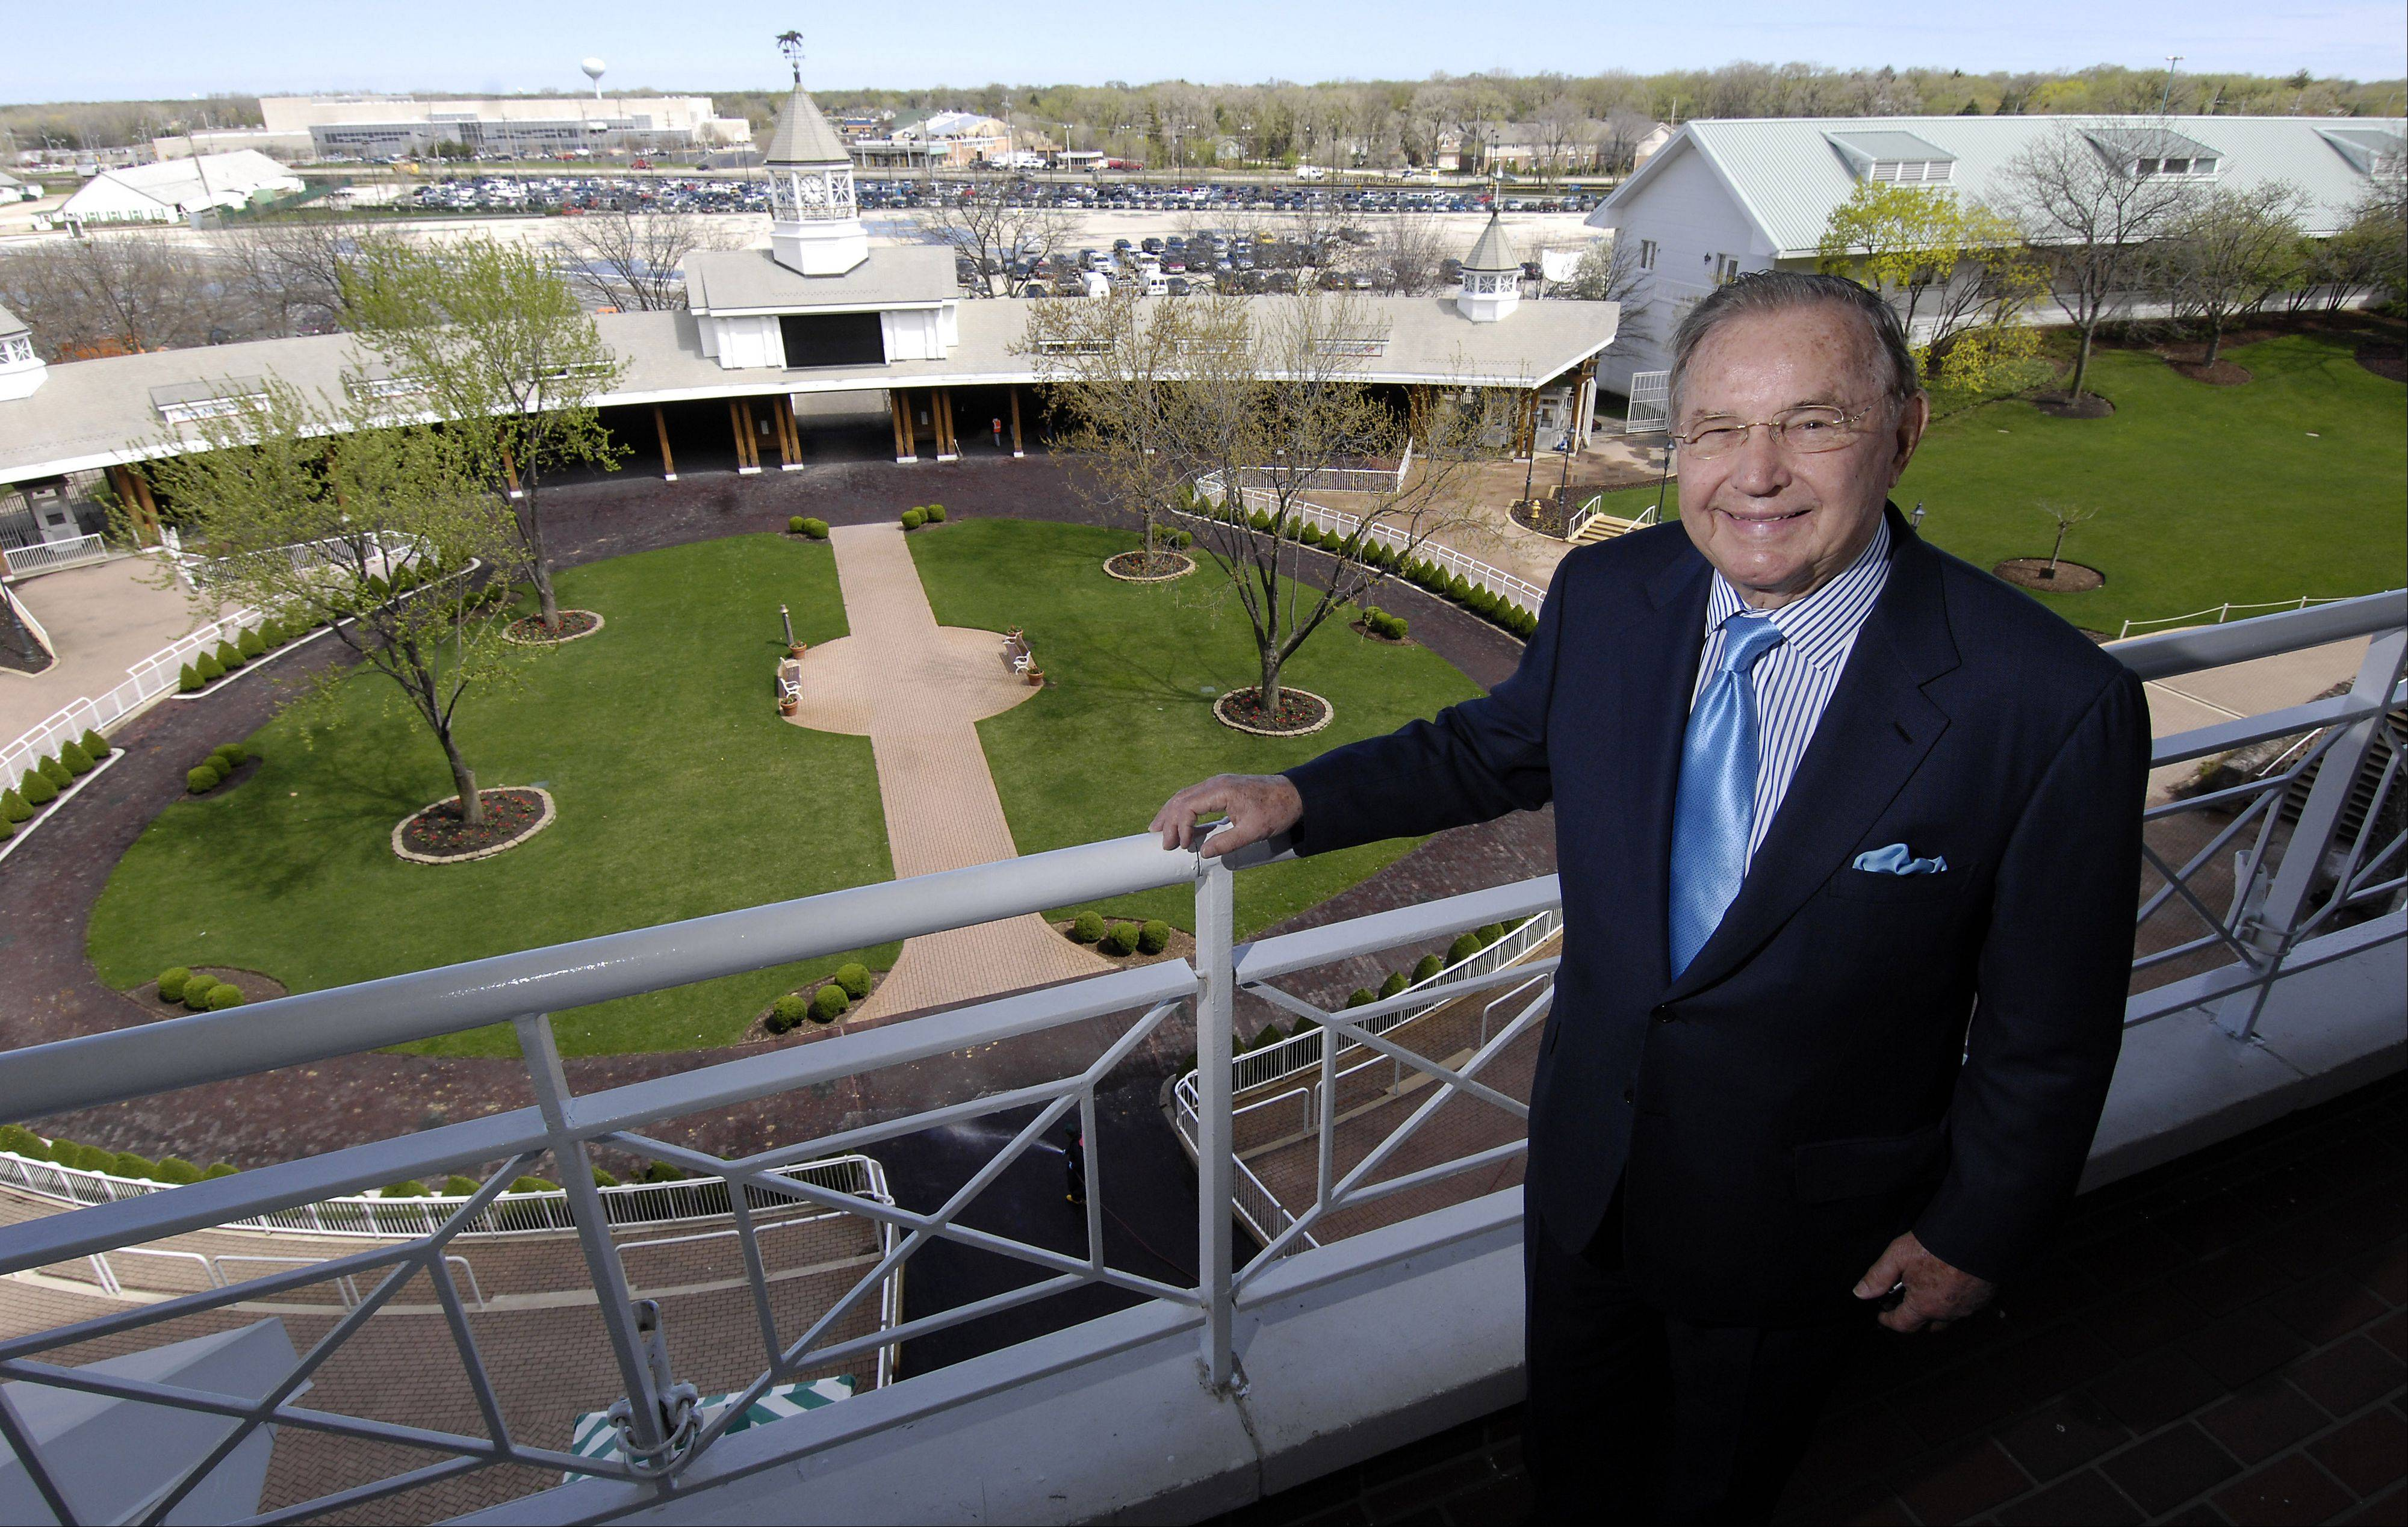 Arlington Park chairman Dick Duchossois has been arguing for slot machines at the racetrack for at least 14 years.